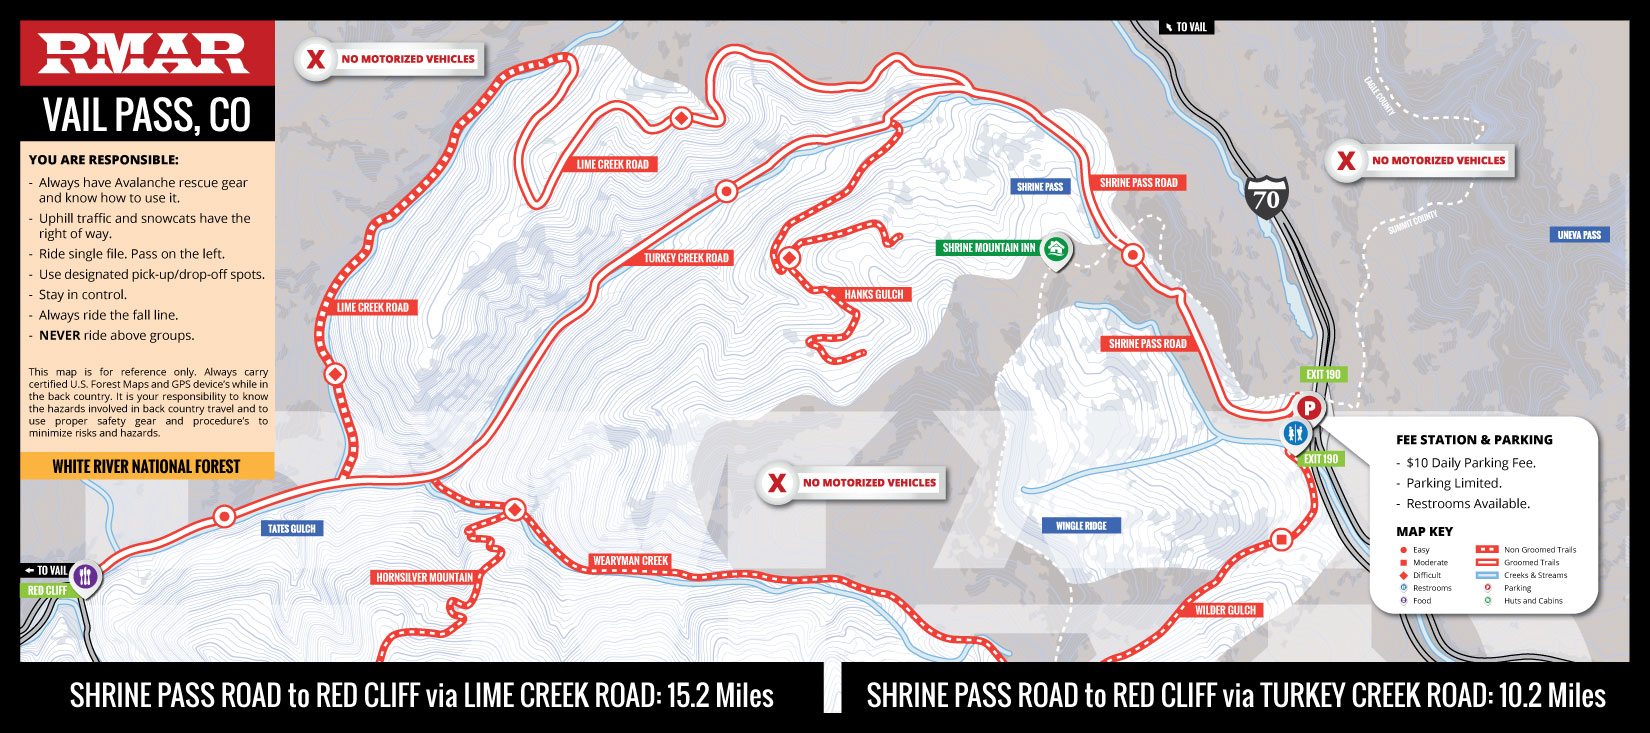 Vail Pass Colorado Timbersled, Snowmobile and Backcountry Ski Map